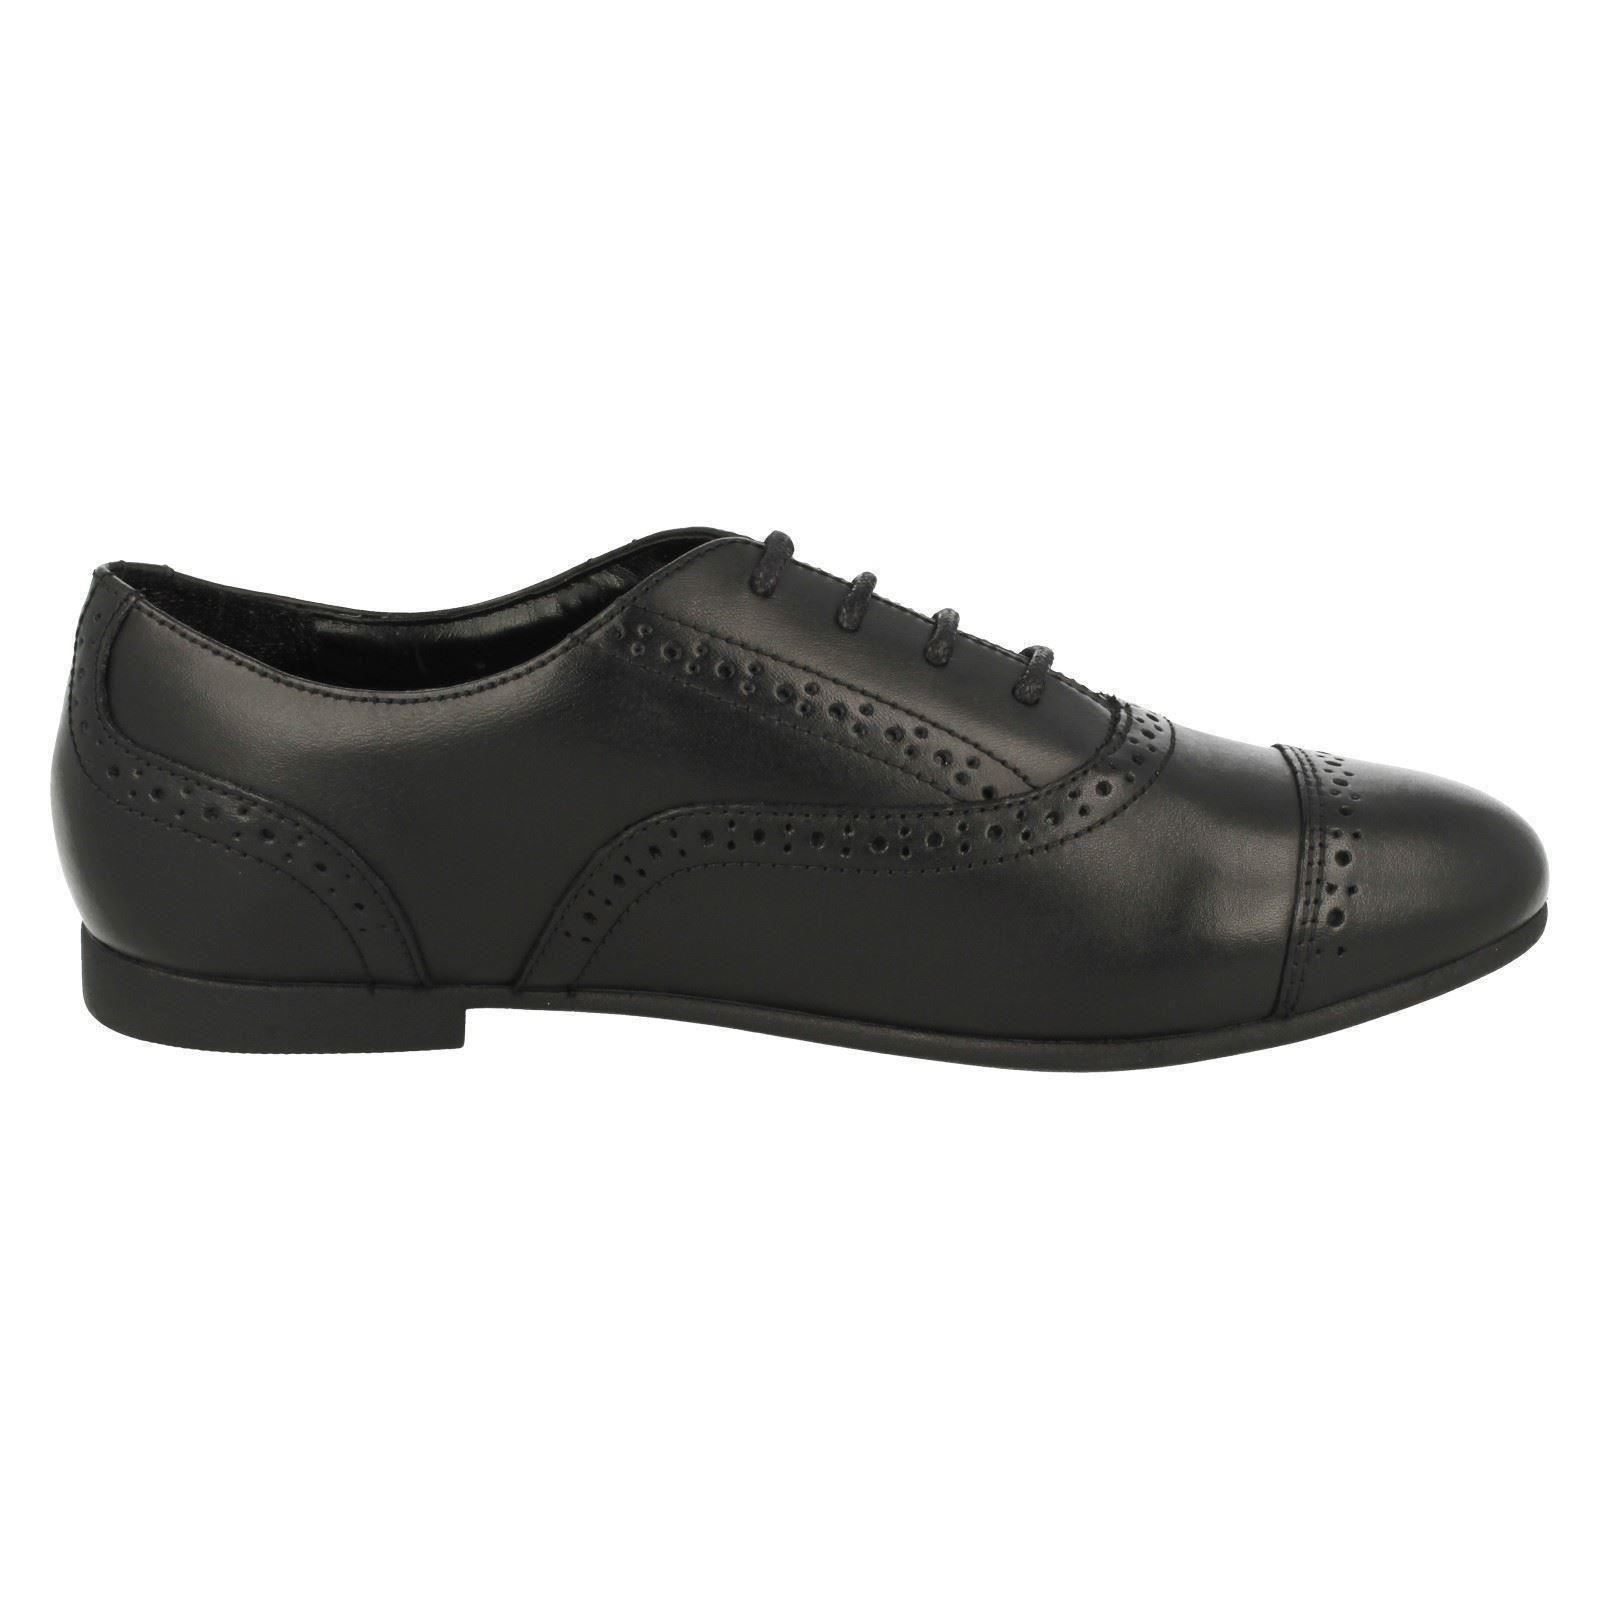 Girls Clarks Formal Brogue Style School Shoes Selsey Cool